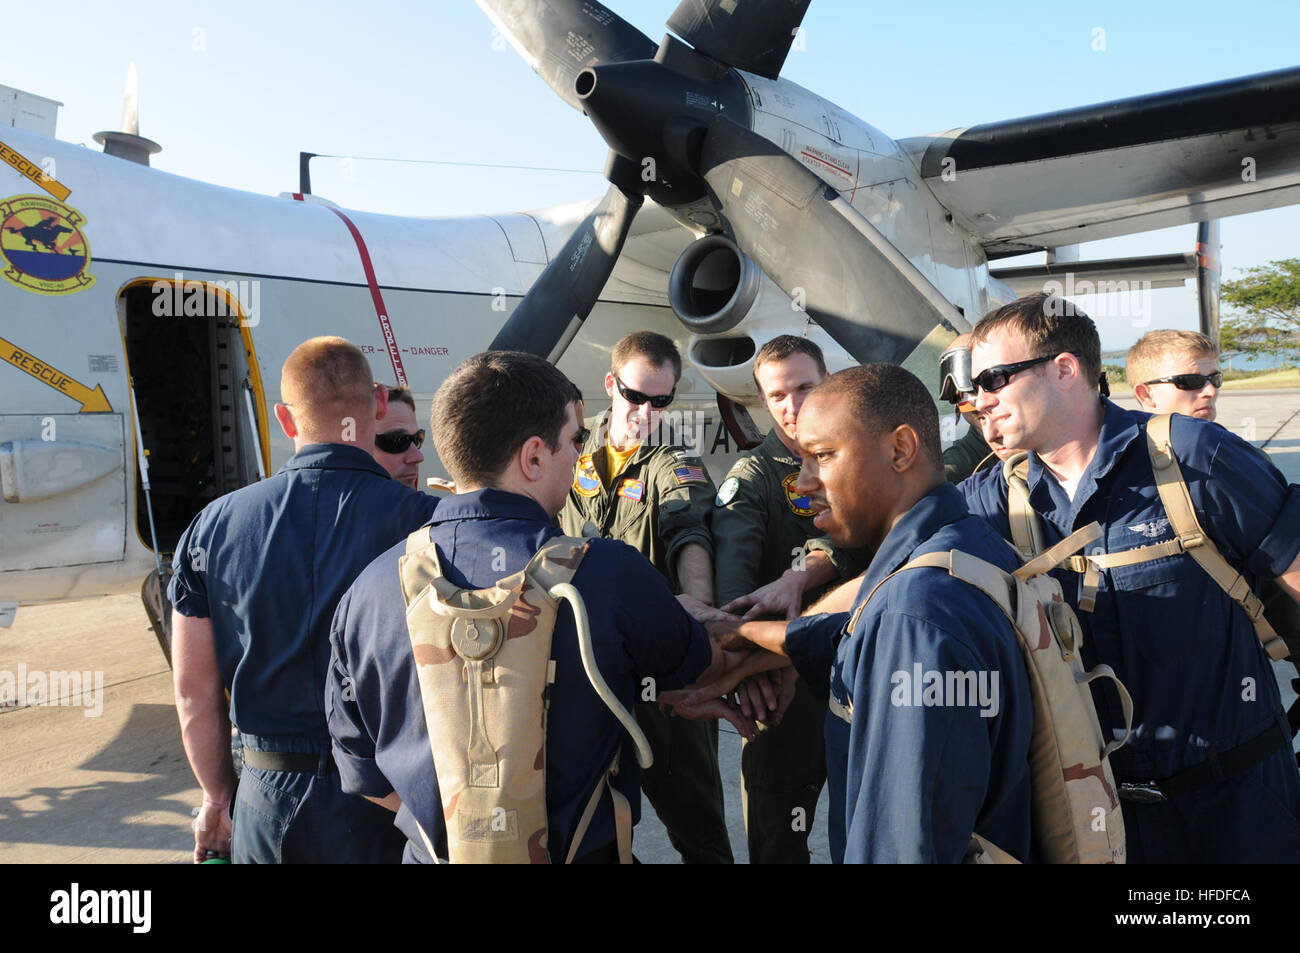 navy petty officer 3rd class kenneth powell an aviation machinist mate leads a group cheer with his flight crew at the us naval station guantanamo bay